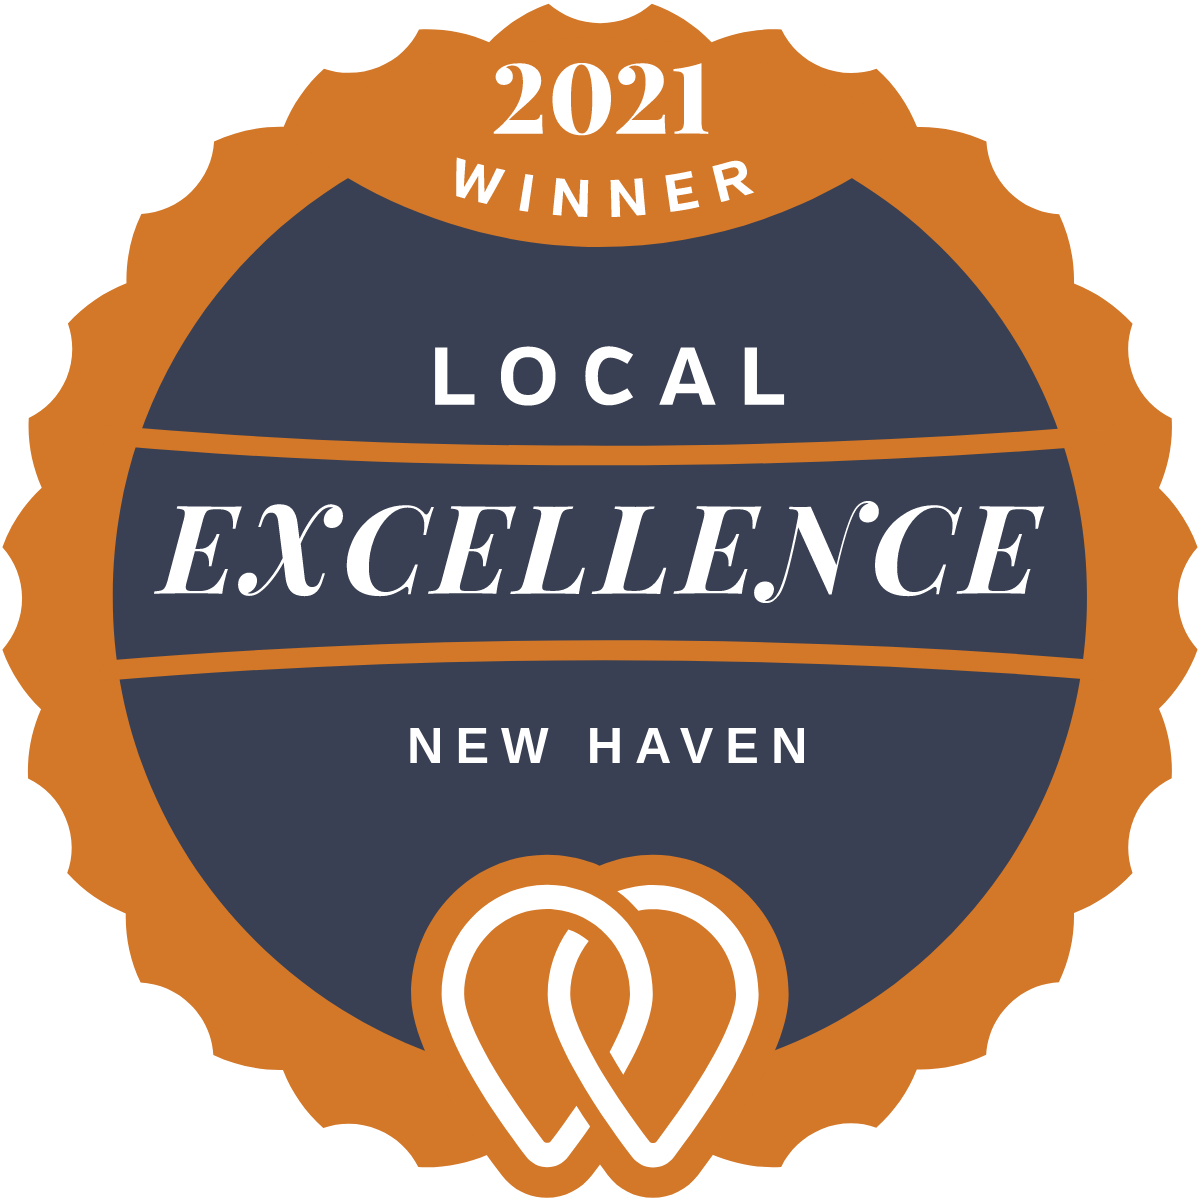 2021 Local Excellence Winner in New Haven, CT